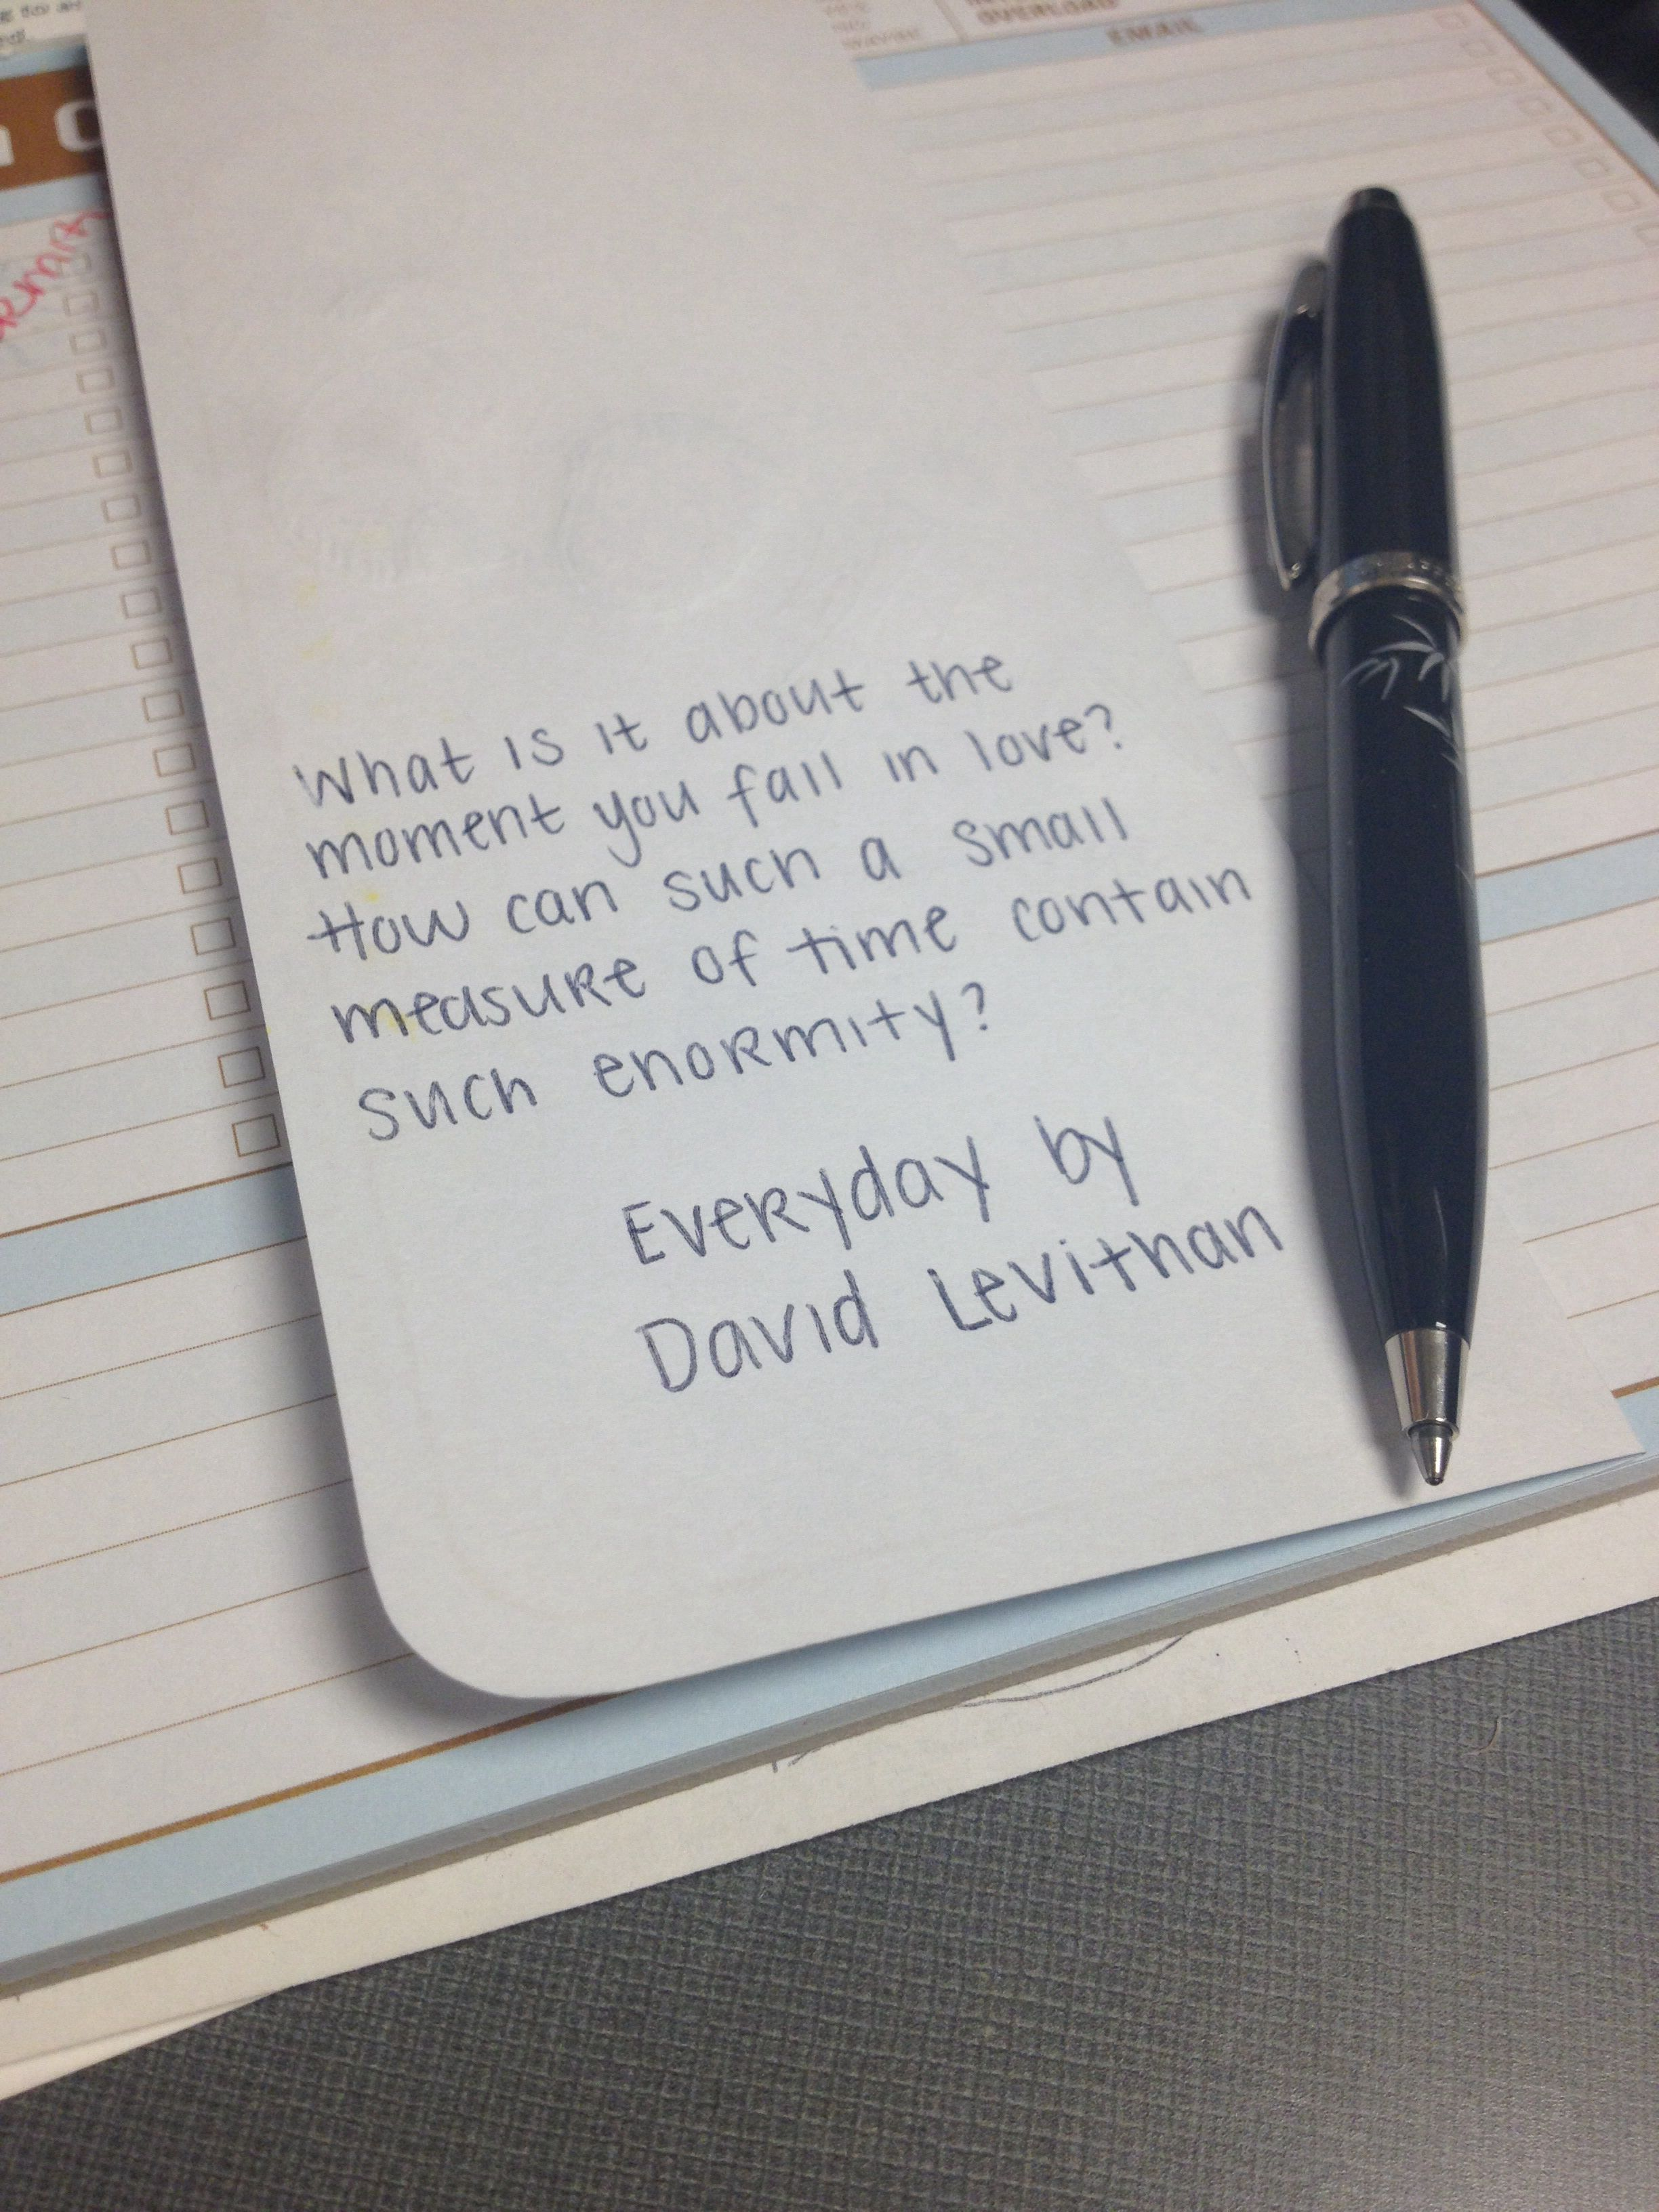 David levithan quote from everyday book qoutes quotes